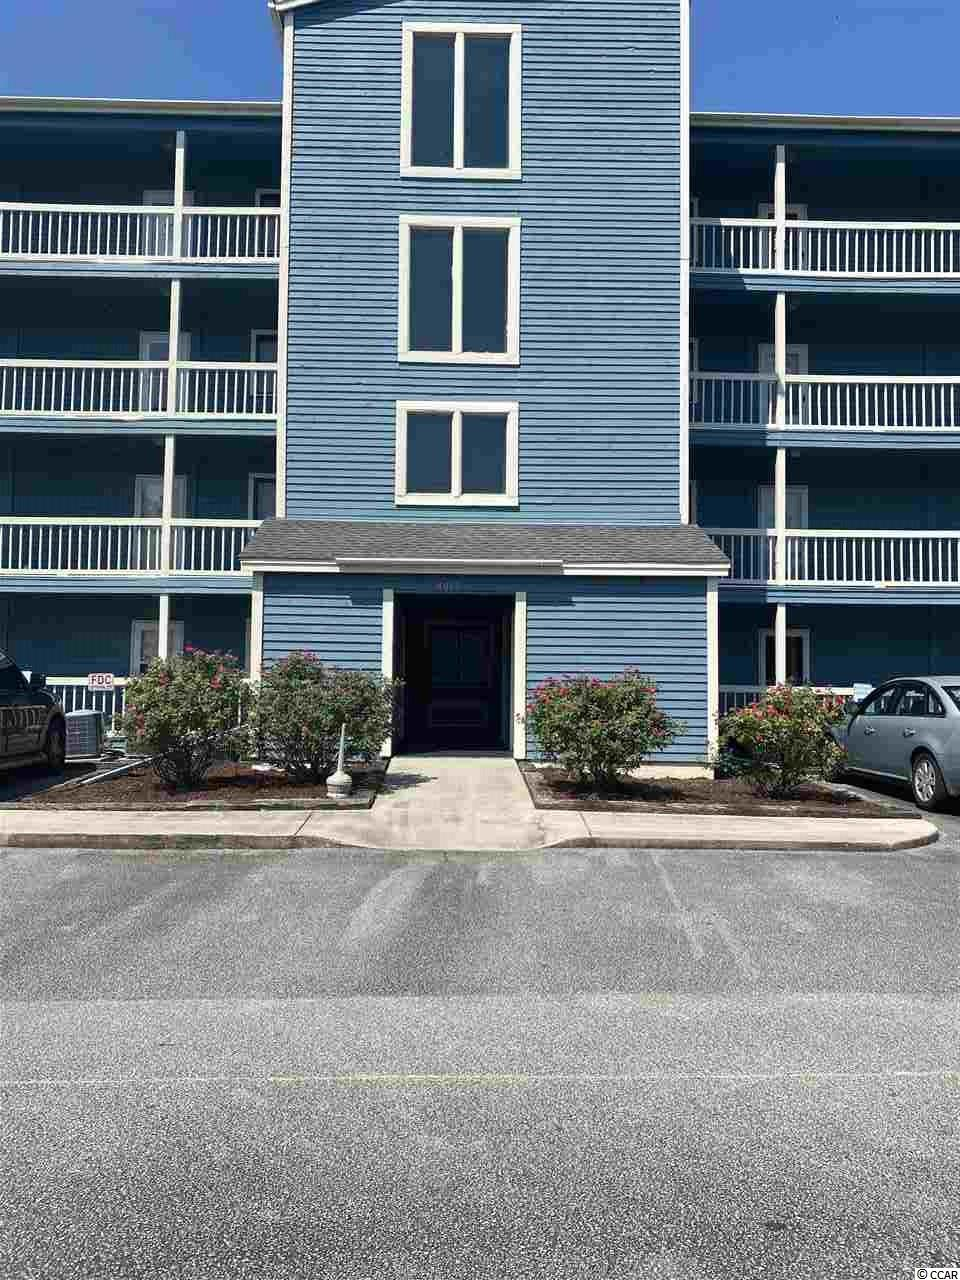 Newly renovated condo nestled in the quaint fishing village of Little River. Eagle Lake is centrally located close to the beautiful beaches of North and South Carolina and minutes away from award winning dining, golf and entertainment. This condo has been completely remodeled with all new flooring and paint (including ceilings) throughout! New HVAC, hot water heater, dishwasher, stove, microwave, sink, garbage disposal, counter tops, cabinets, bathroom vanities, and doors. It is better than brand new!  Enjoy your morning coffee or evening cocktail on the screened porch while taking in beautiful views of the lake! Just steps away from Eagle's Nest Golf Course!  This is a second floor unit but the building does have an elevator. Truly a hidden gem - don't miss out!